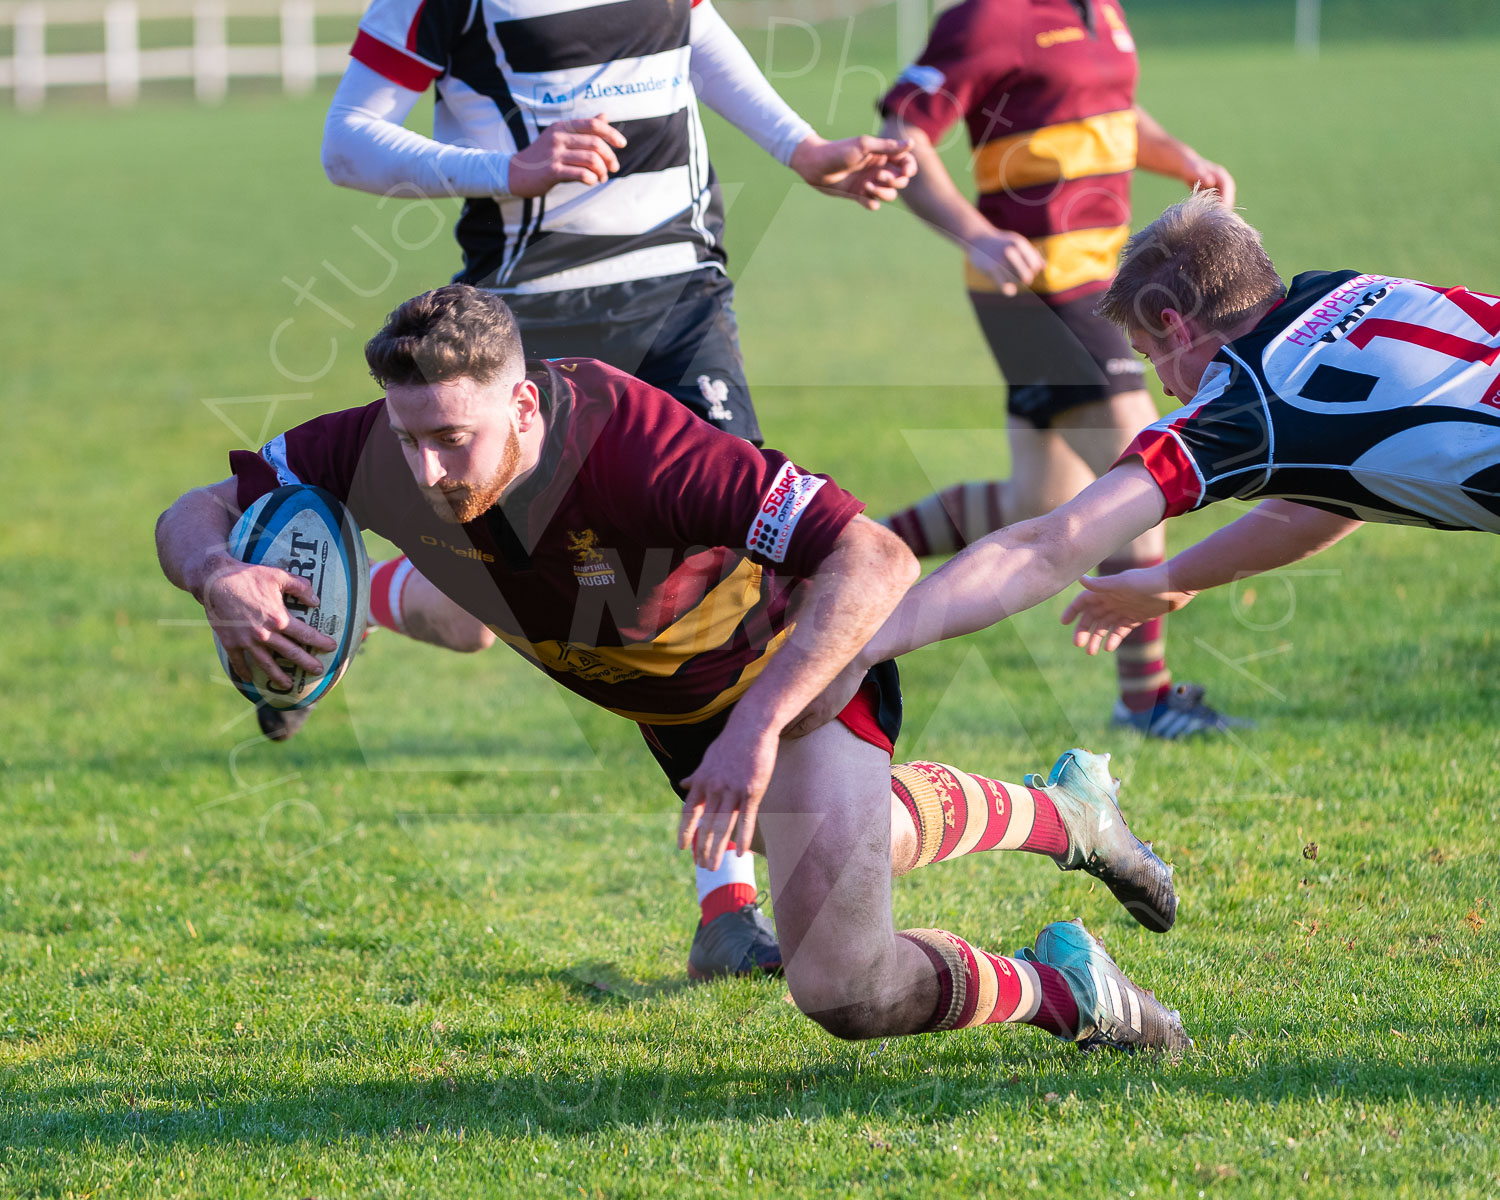 Will Norford crosses the line to open the scoresheet (Photo: Iain Frankish, Actuance Photography)